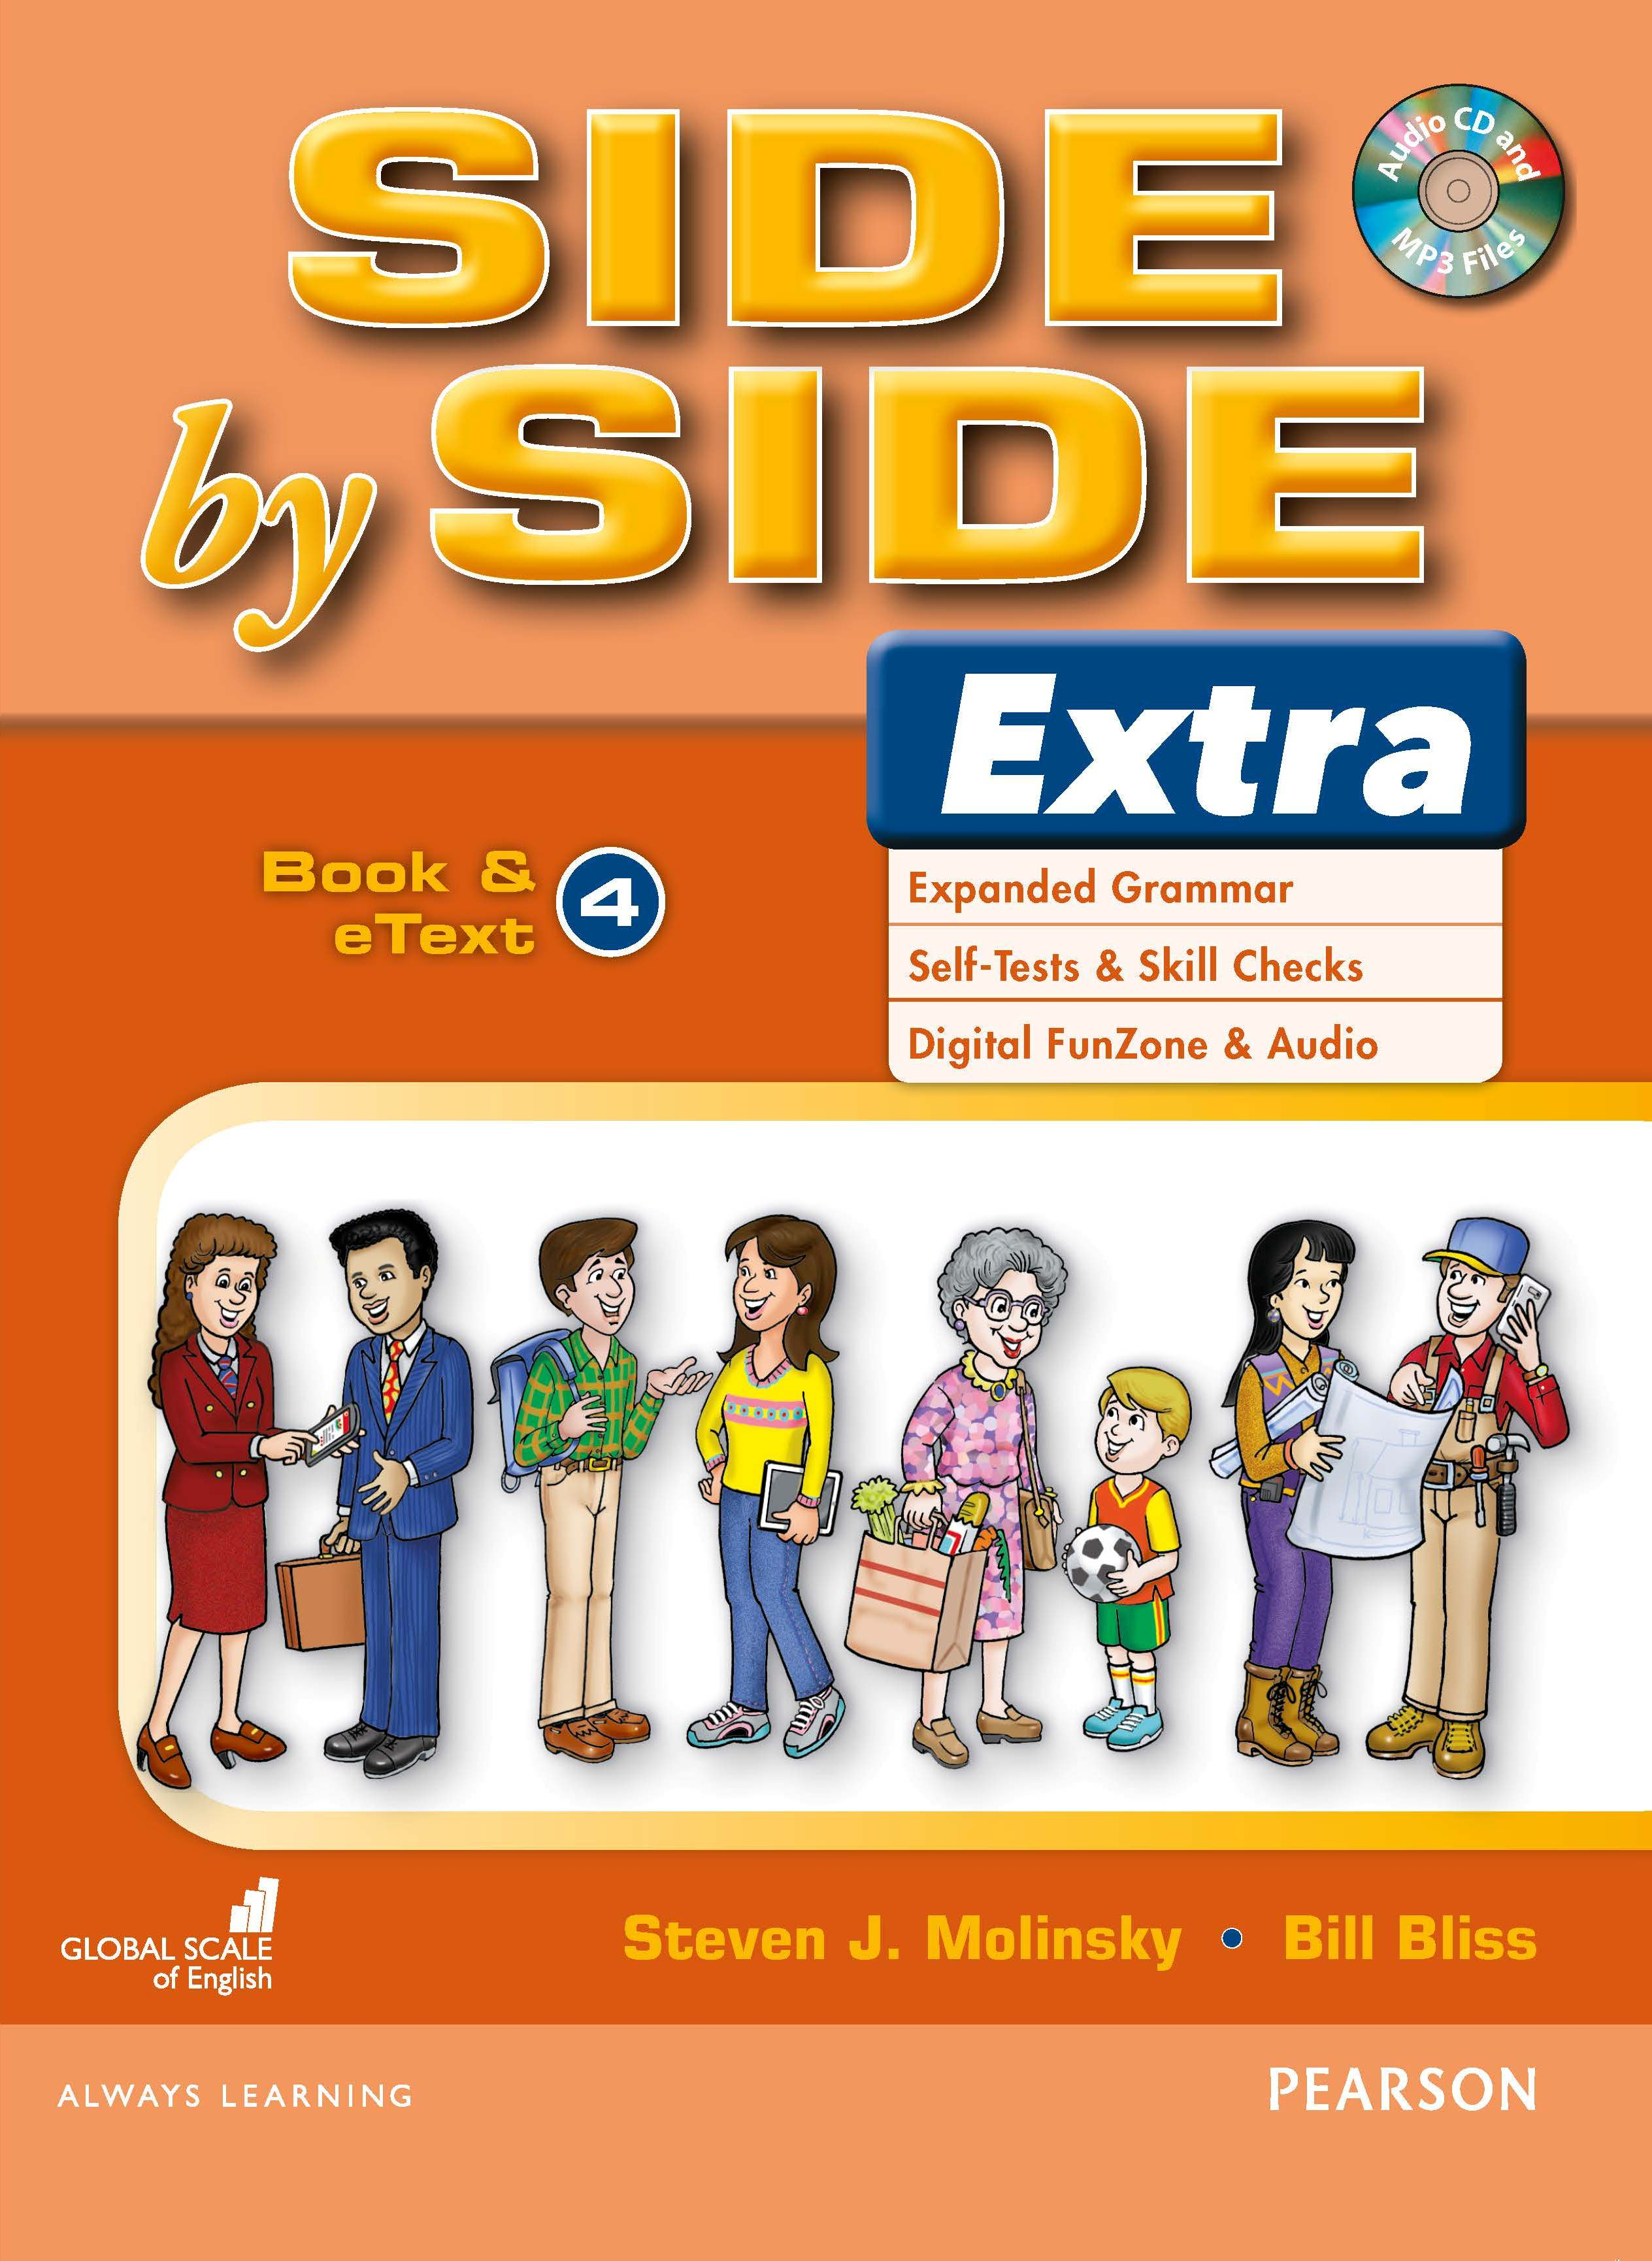 English Course Side by Side Extra Student Book cover Level 4